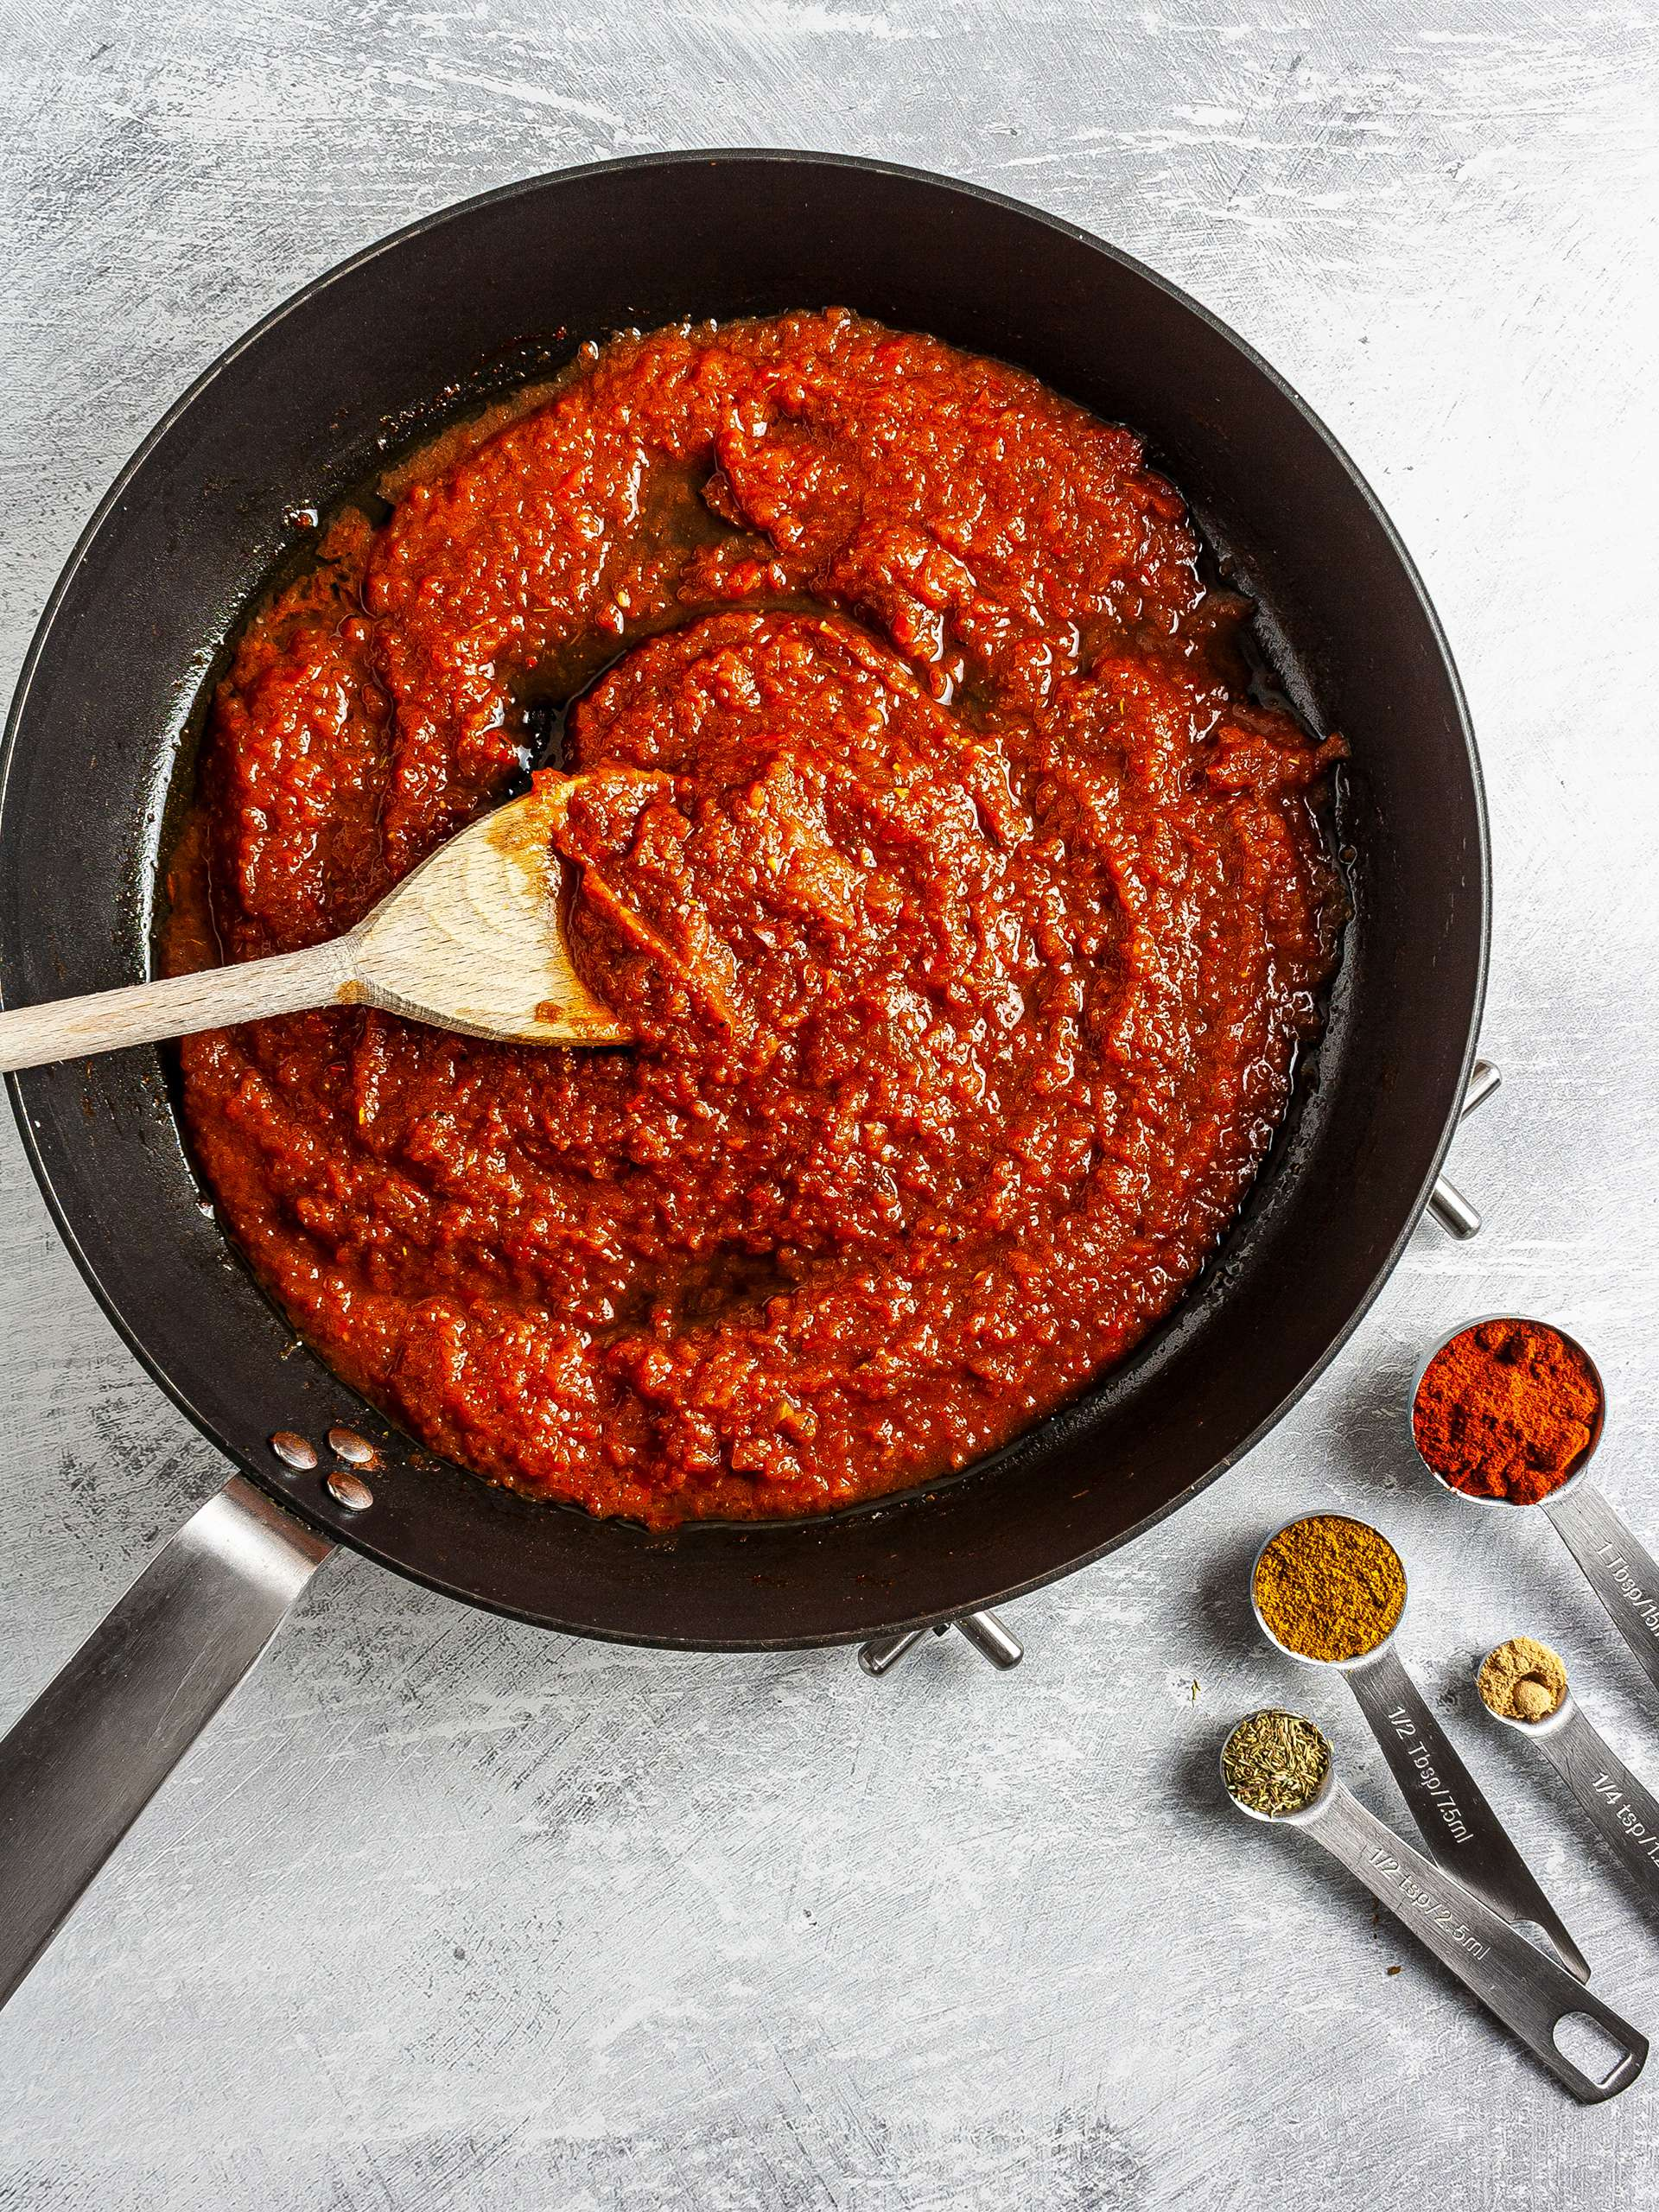 Tomato sauce with curry and paprika